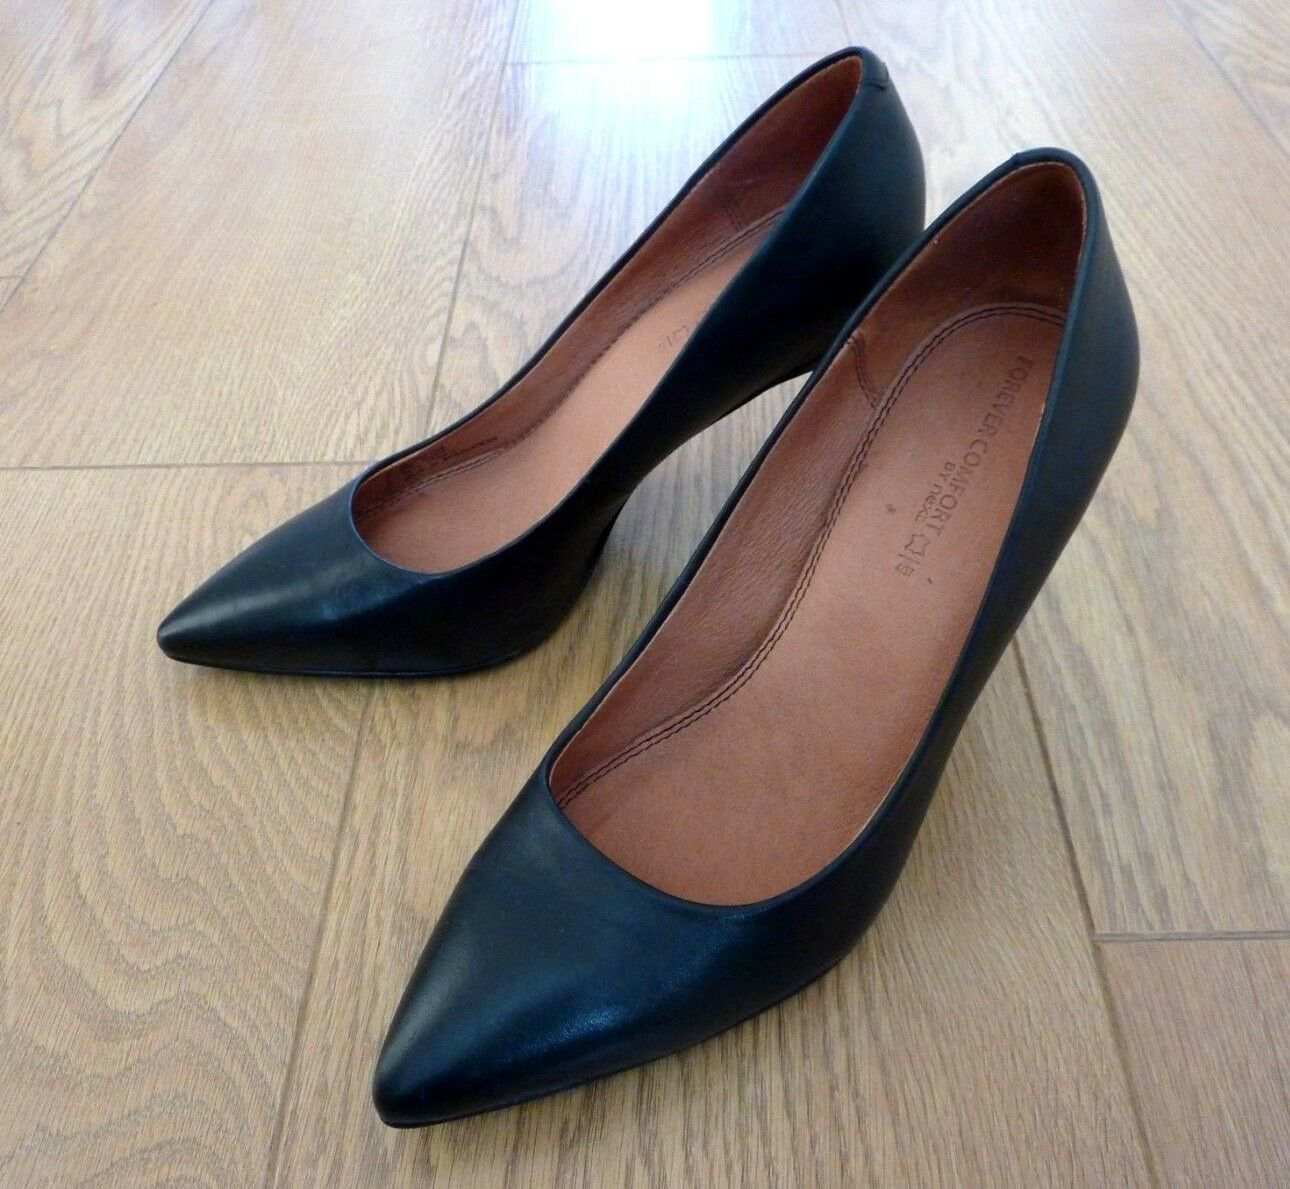 check out bf0c3 9bd01 Next Forever Comfort Ladies Court Heel Black Leather shoes Size UK 4 EU 37  nofapq7111-Women s Heels